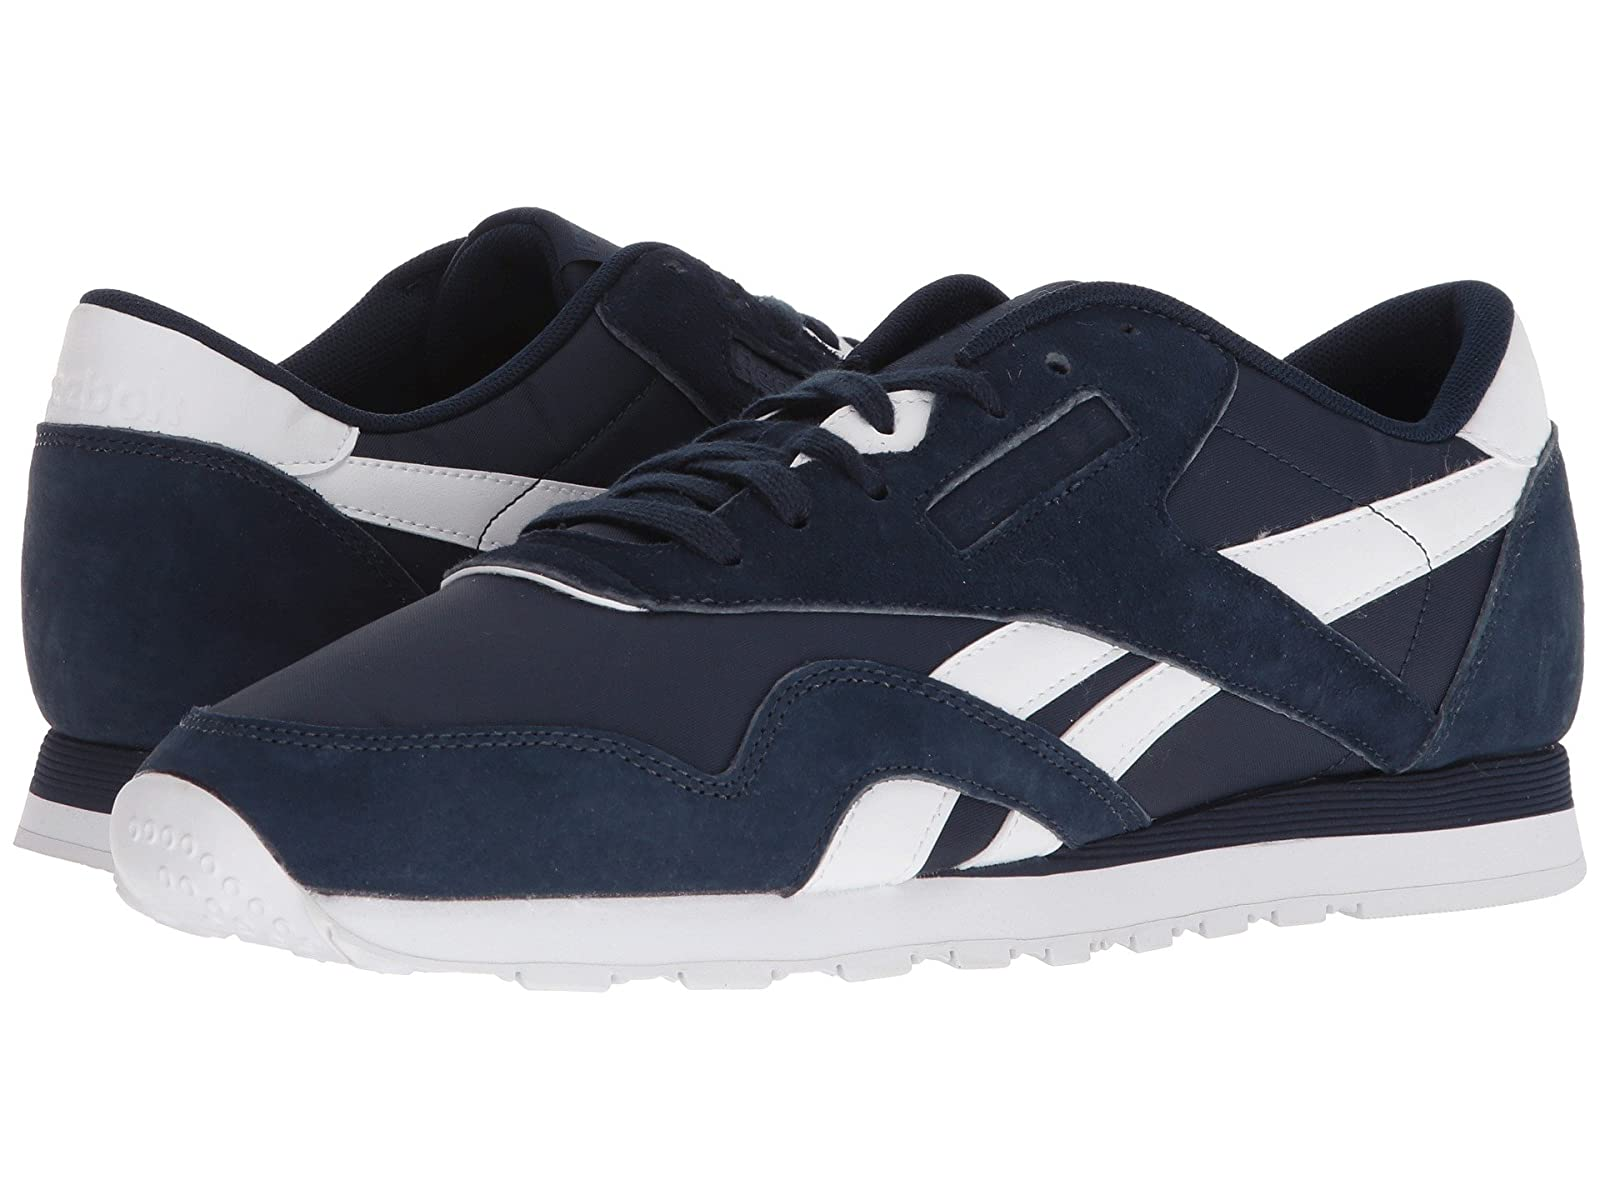 Reebok Lifestyle Classic Nylon PNAtmospheric grades have affordable shoes